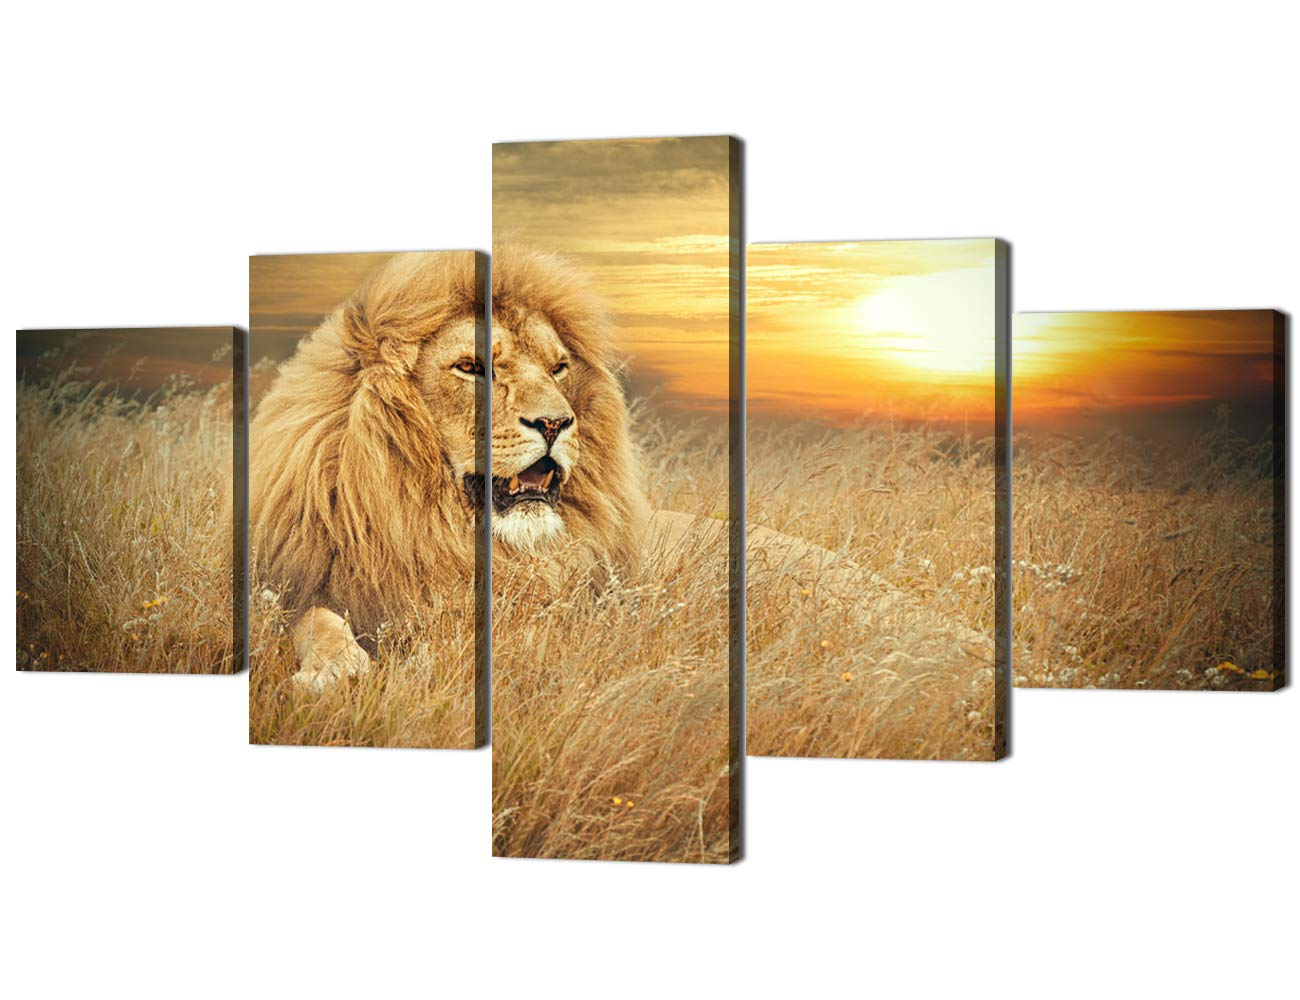 Artwork-09 70''W x 40''H Yatsen Bridge Framed Lion Pictures Wall Decor Modern 5 Panels White Black Lions Canvas Wall Art Easy to Hang Animal Posters for Living Room Bedroom Decor - 60''W x 32''H